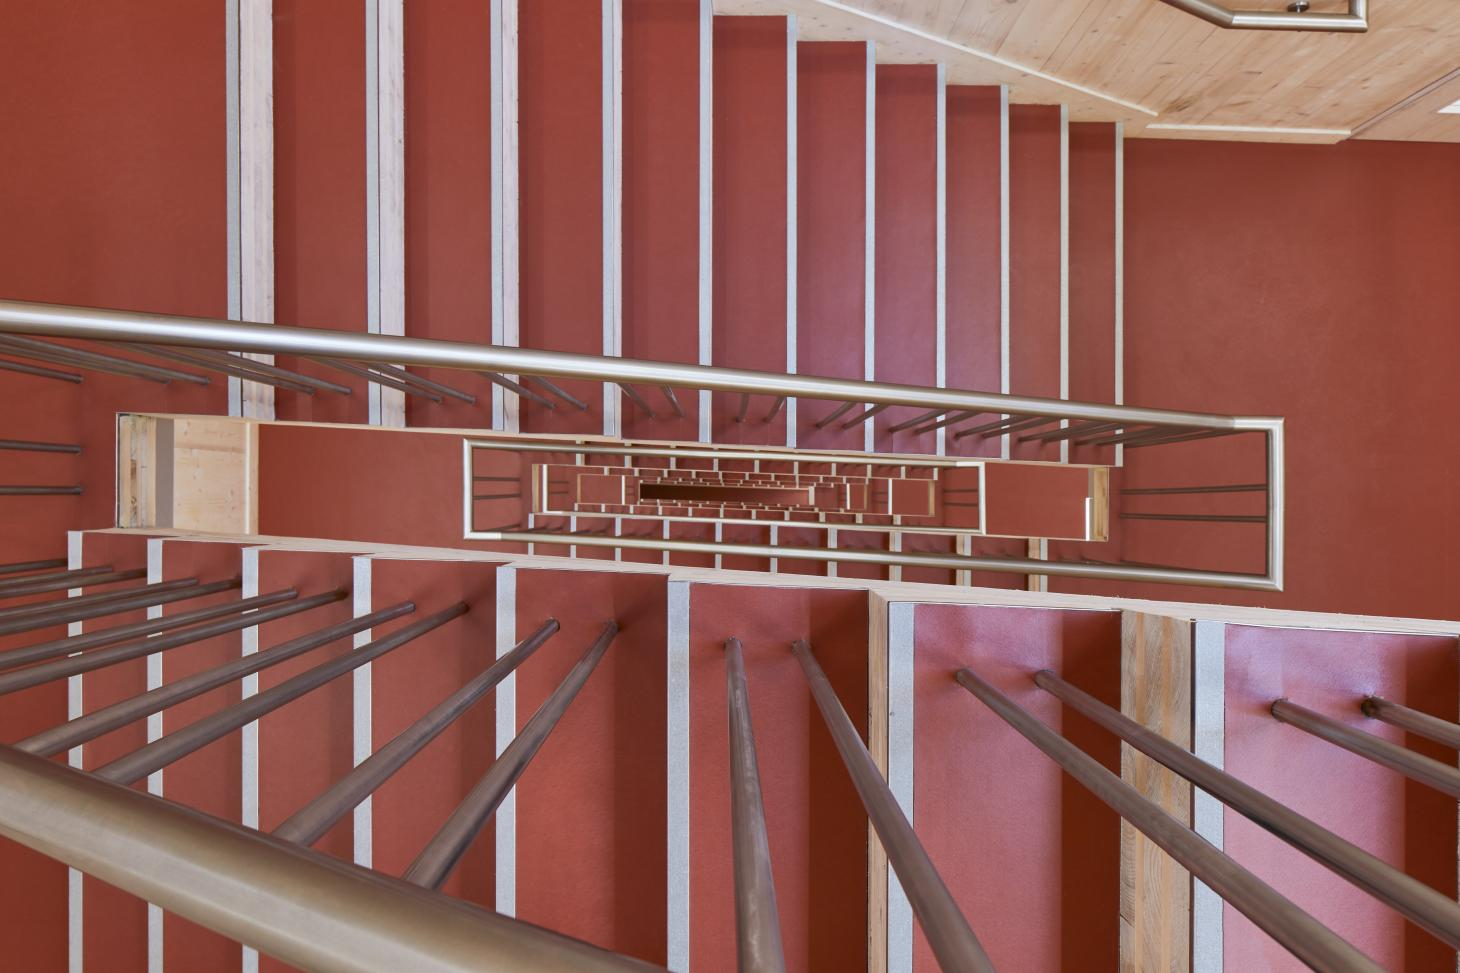 Waugh Thistleton storey office staircase